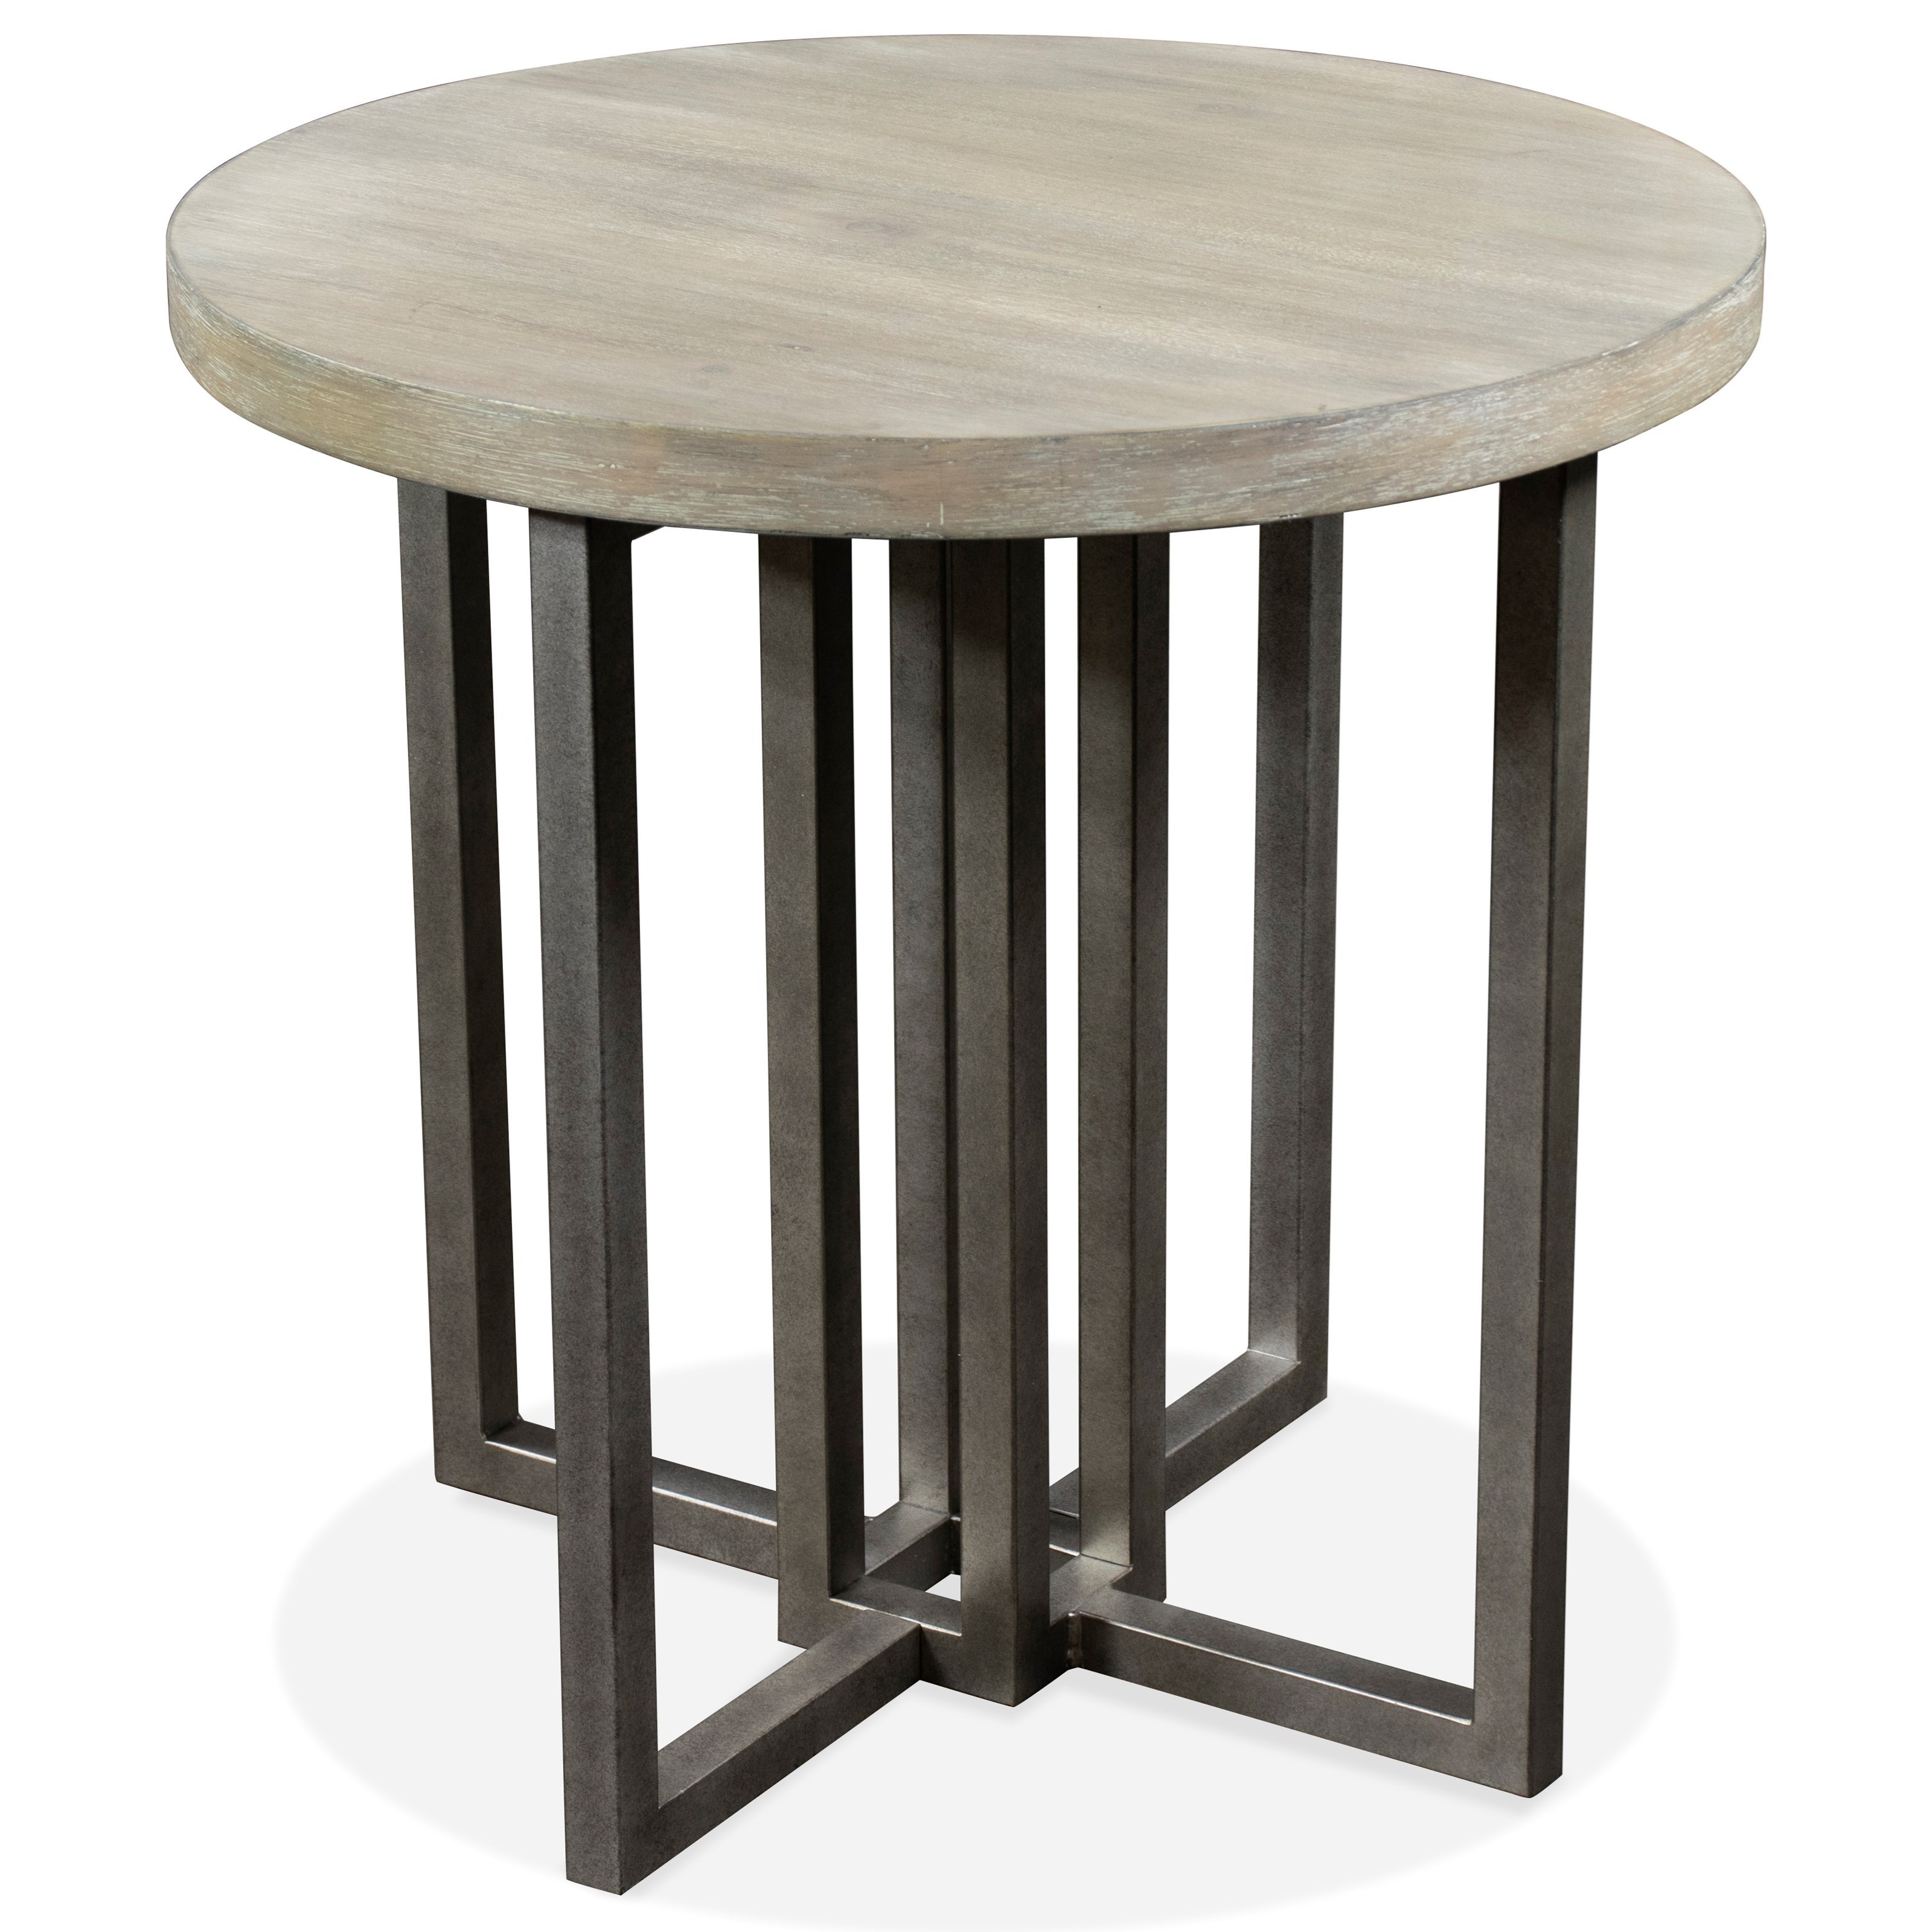 Adelyn Round End Table by Riverside Furniture at A1 Furniture & Mattress